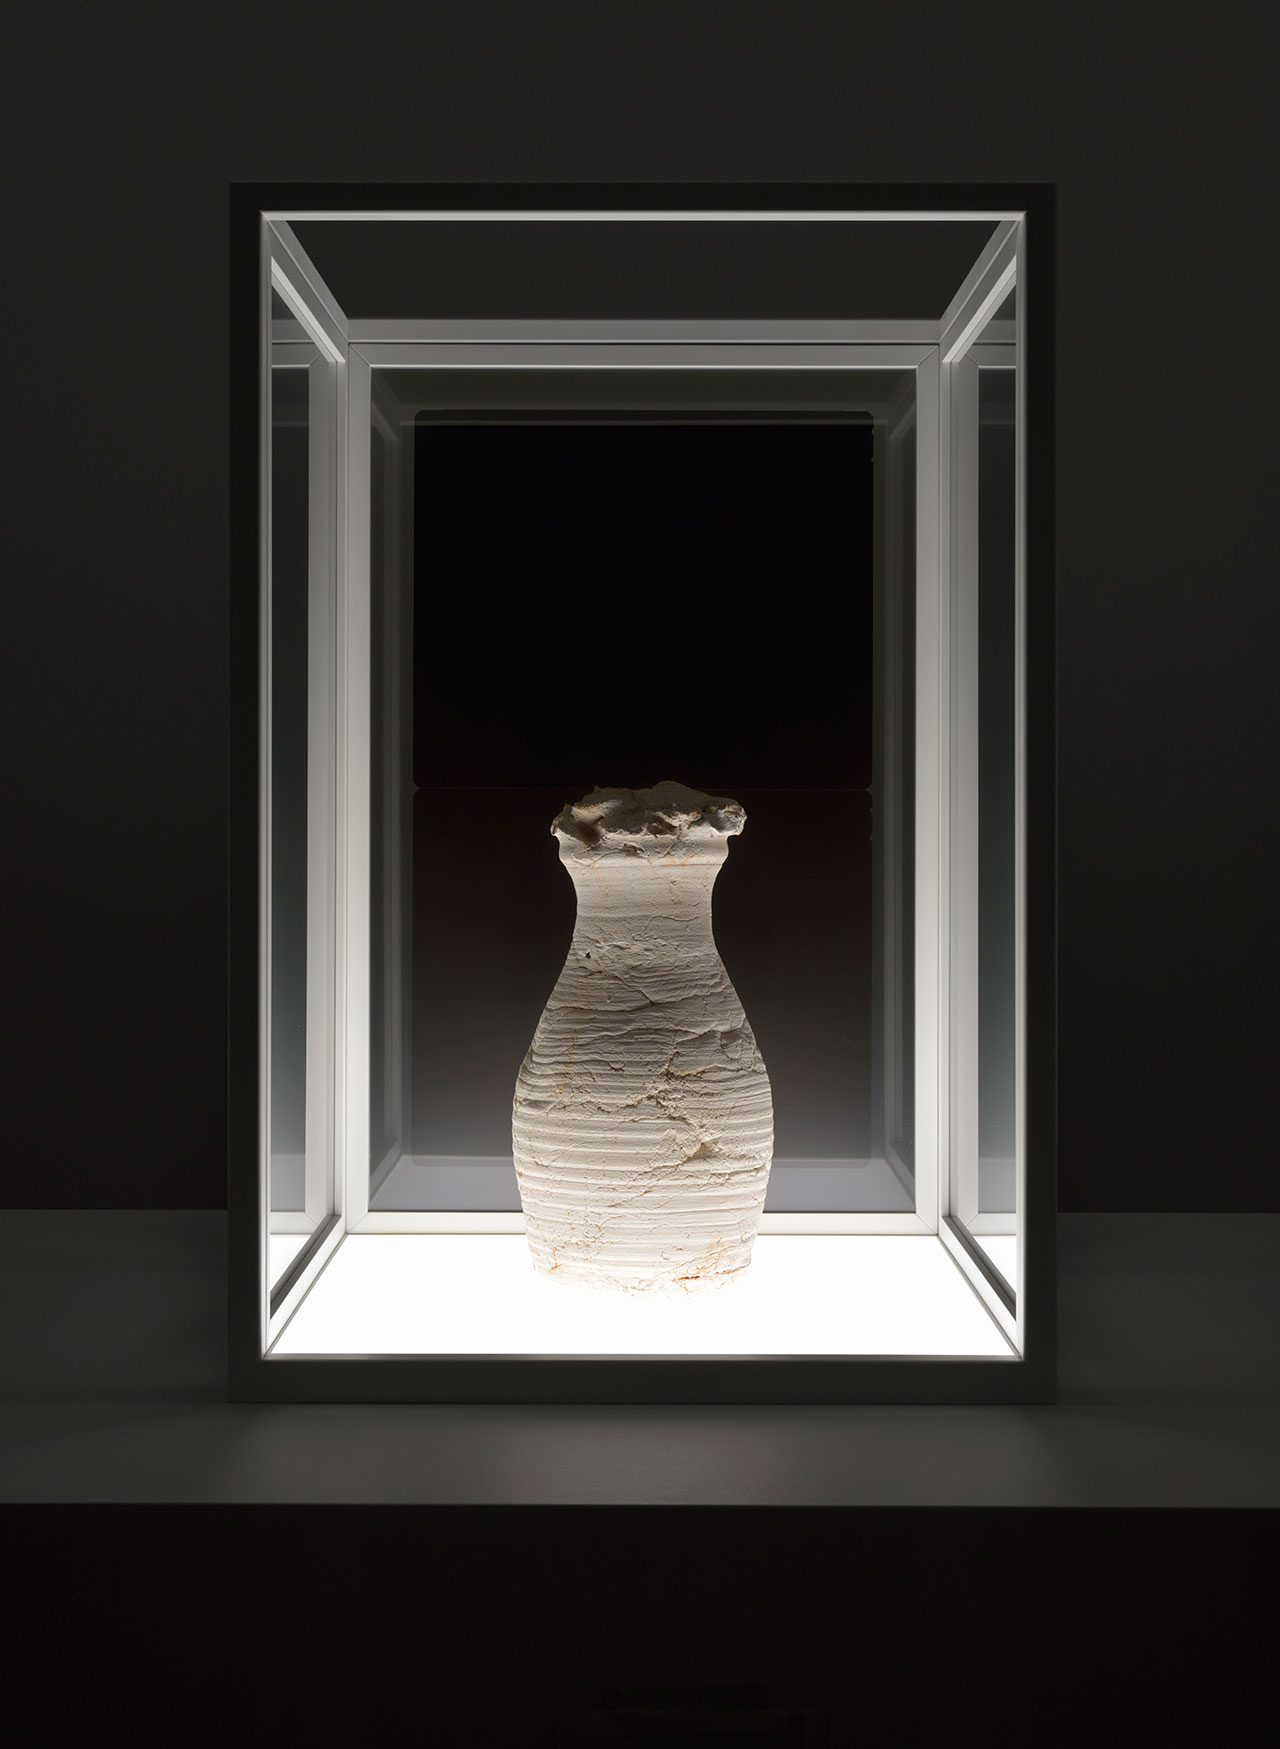 Giuseppe Penone, Il vuoto del vaso (The void of the vase) , 2005. Terracotta, 3 X-raysTerracotta: 16 ½ x 9 5/8 in. (42 x 24.5 cm)Metal structure: 34 13/16 in. (88.5 x 60 x 60 cm). Photo by Rebecca Fanuele. Courtesy the artist and Marian Goodman Gallery.